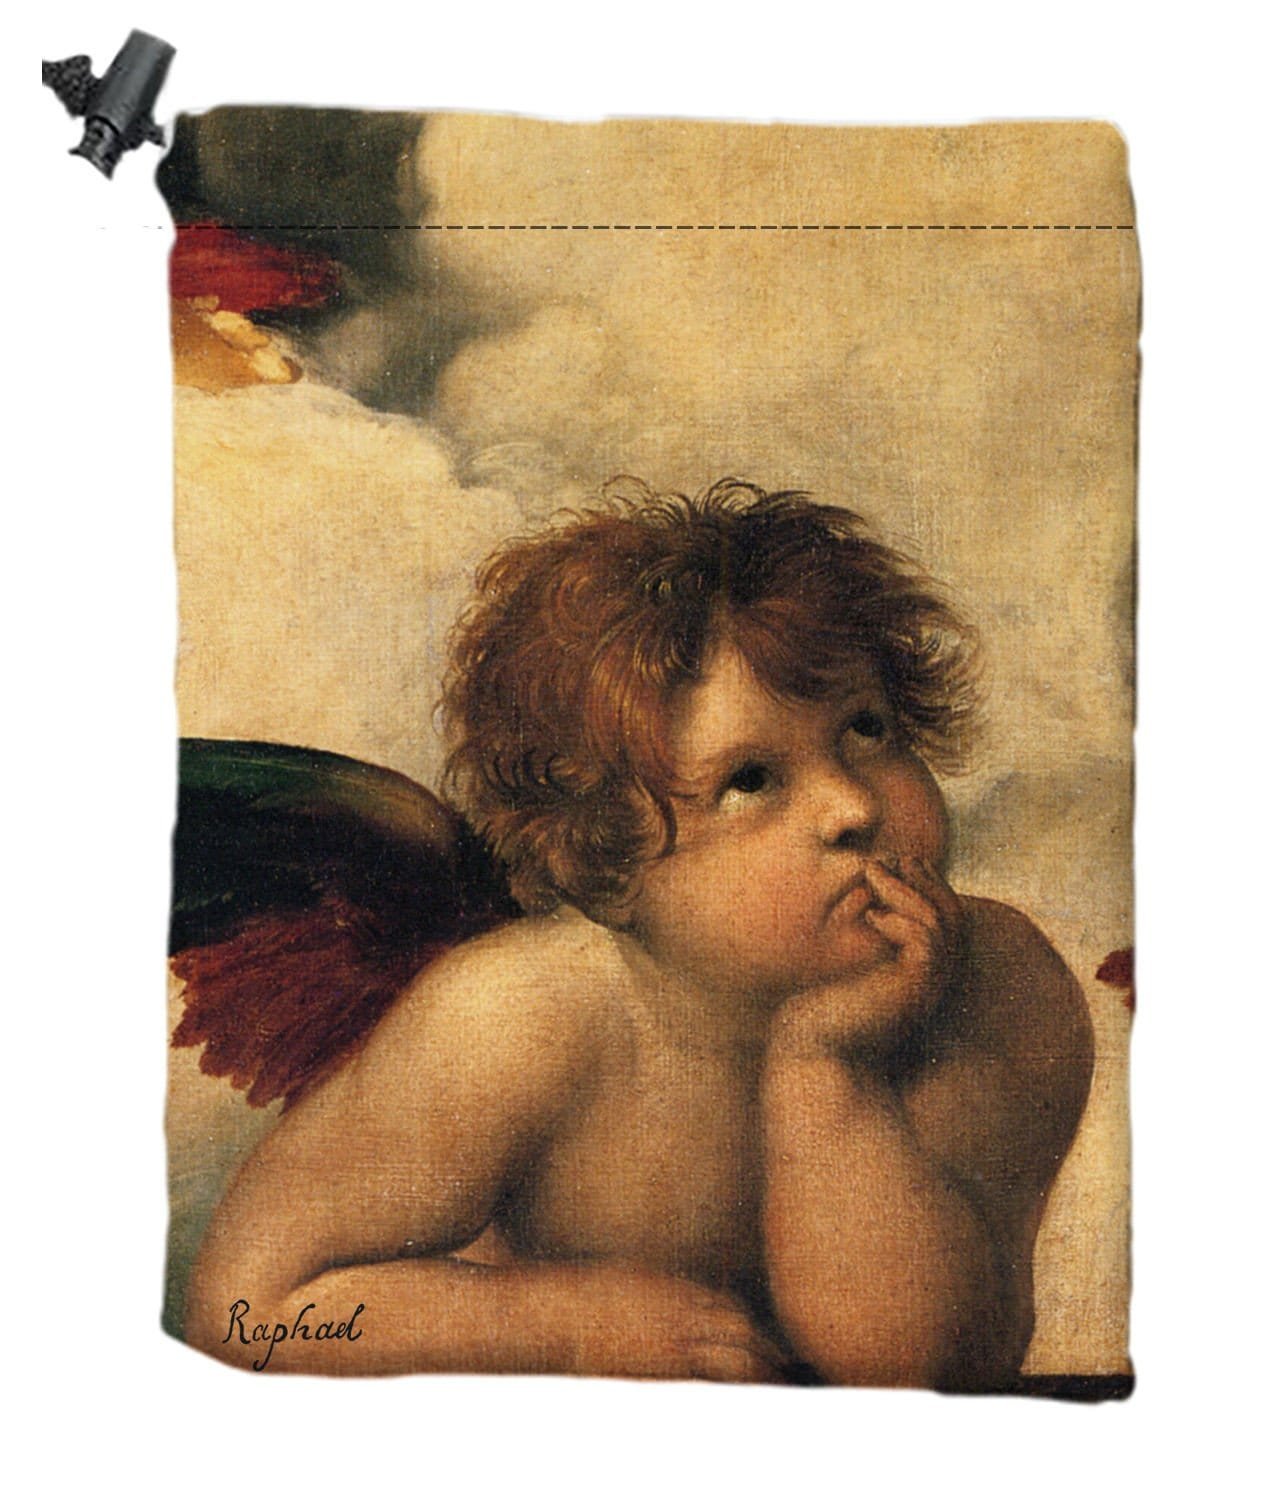 Angel Dice Bag by Raphael